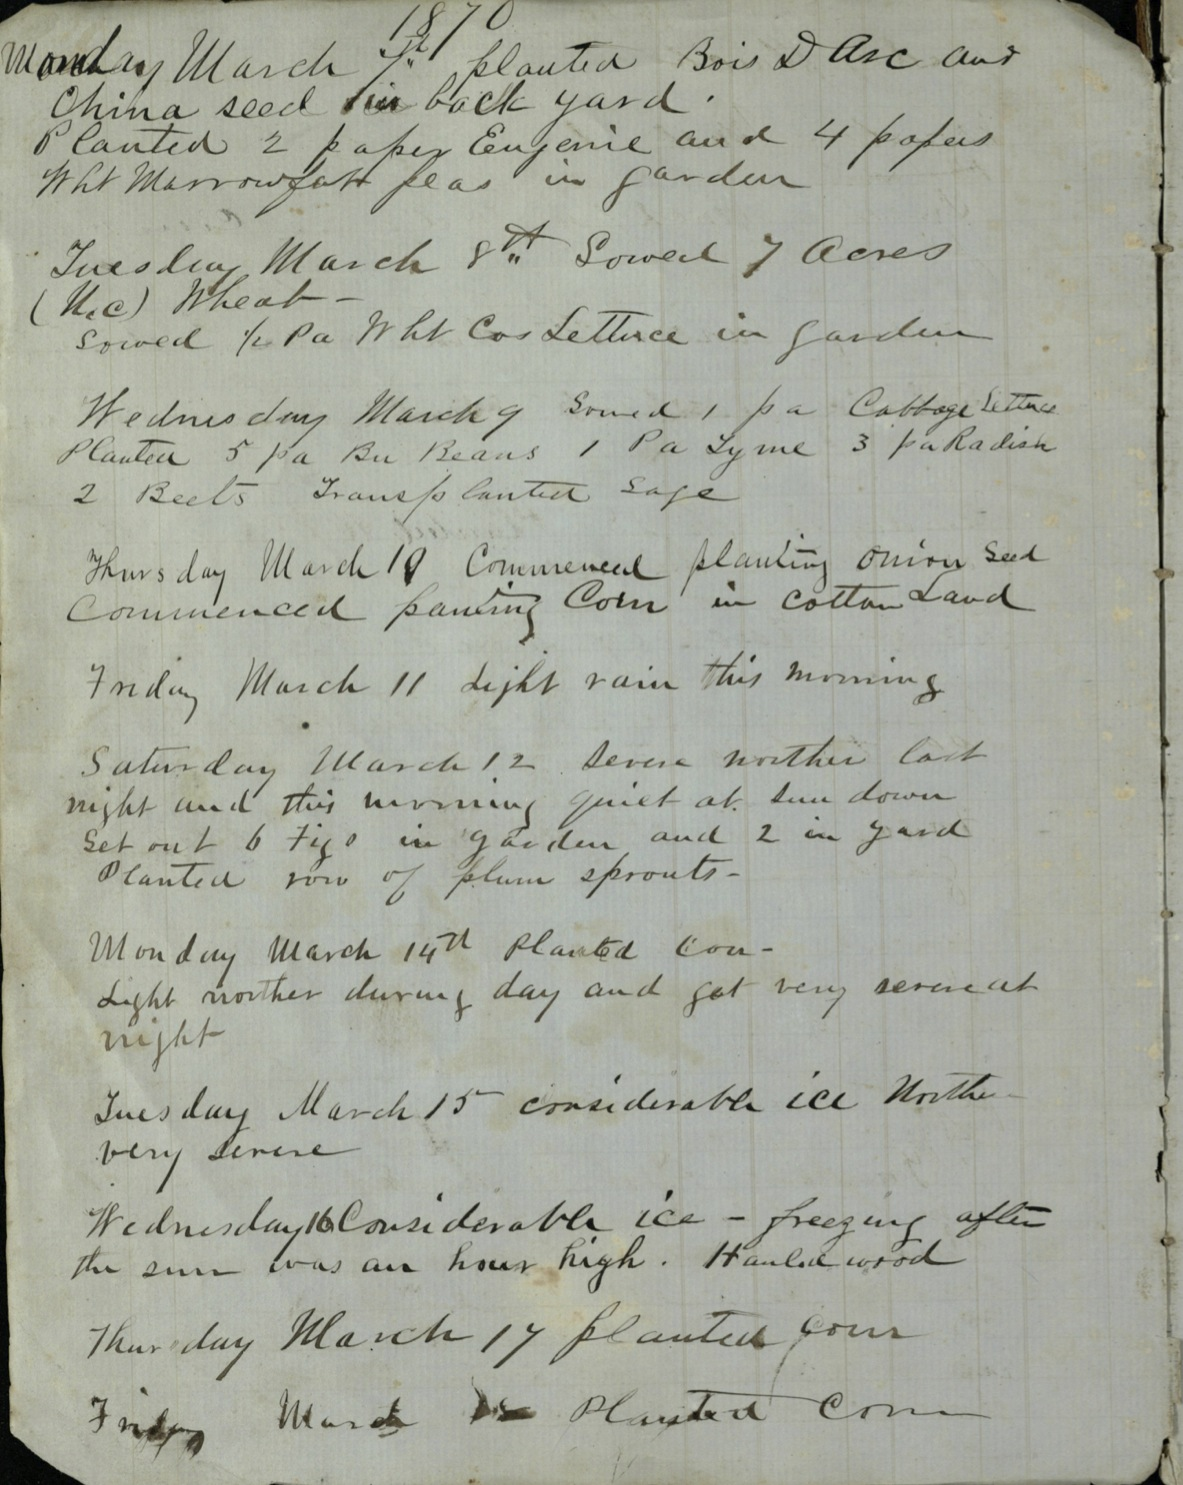 Major Isham Harrison Earle's weather observation journal, March 1870